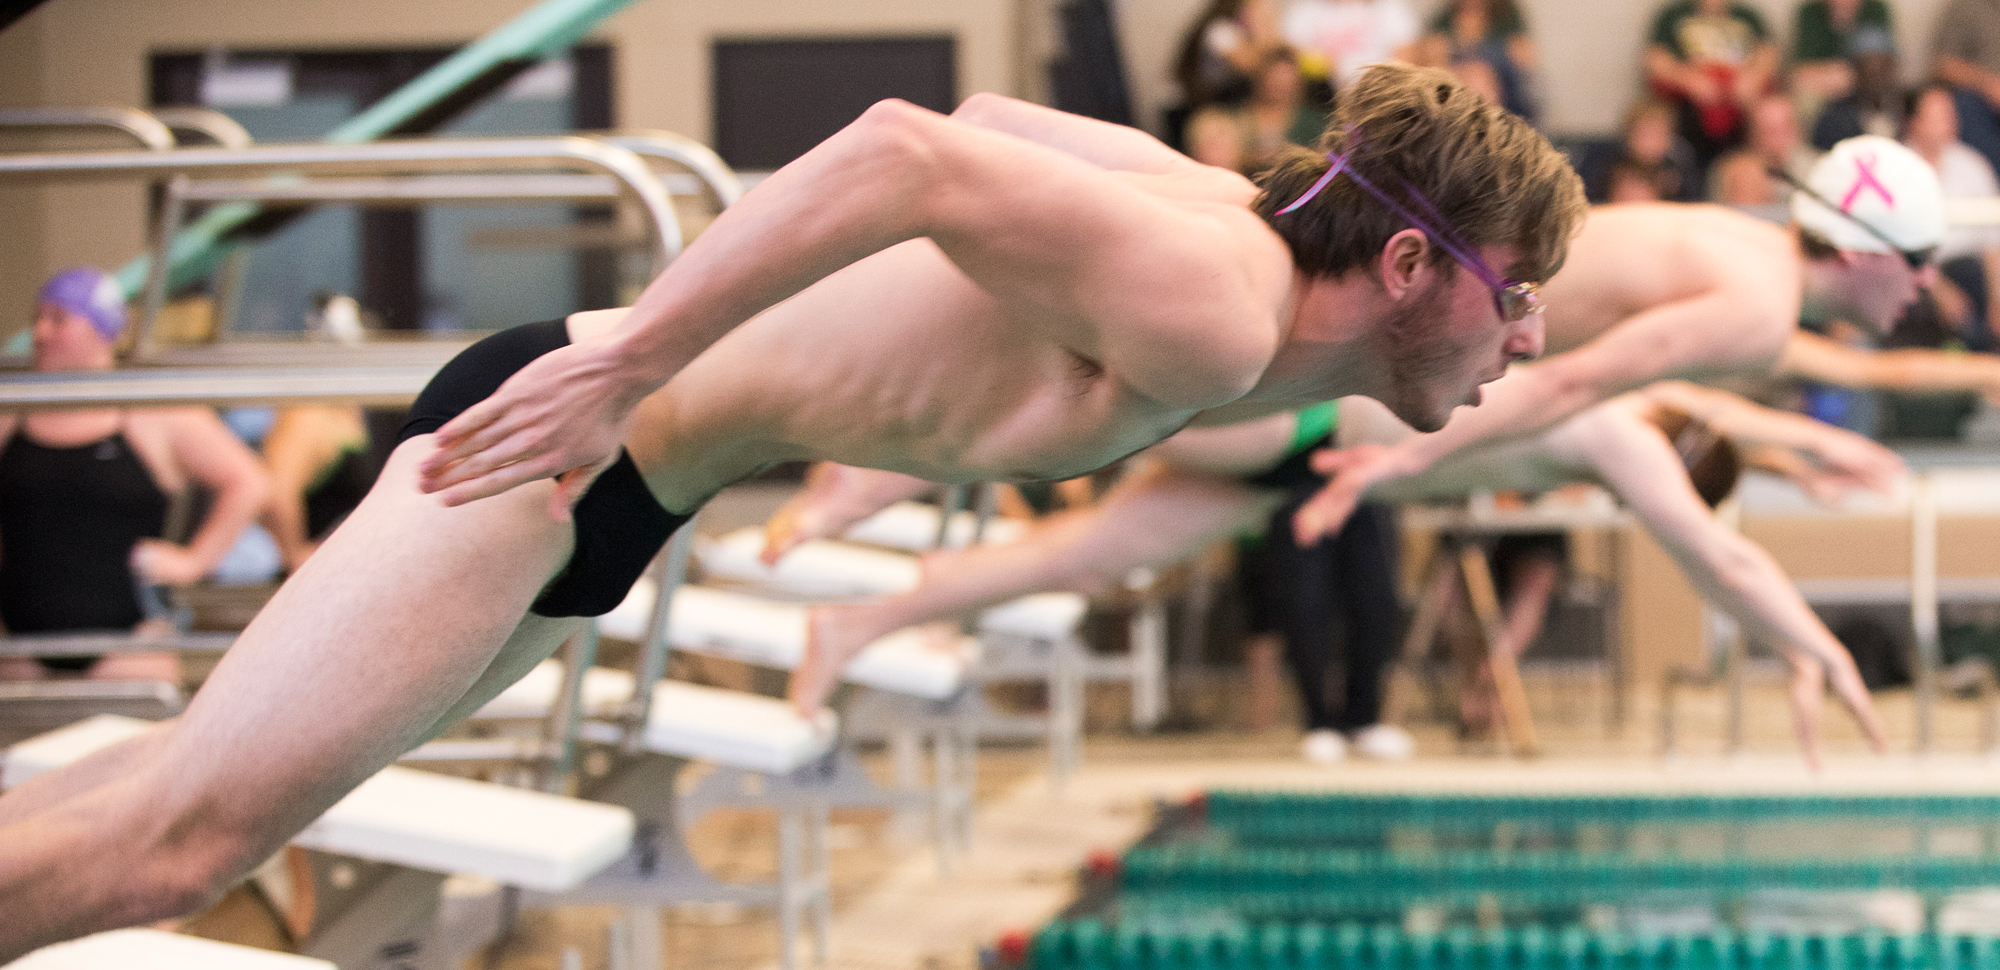 Swimming & Diving Programs Gear Up for Landmark Conference Championships This Weekend